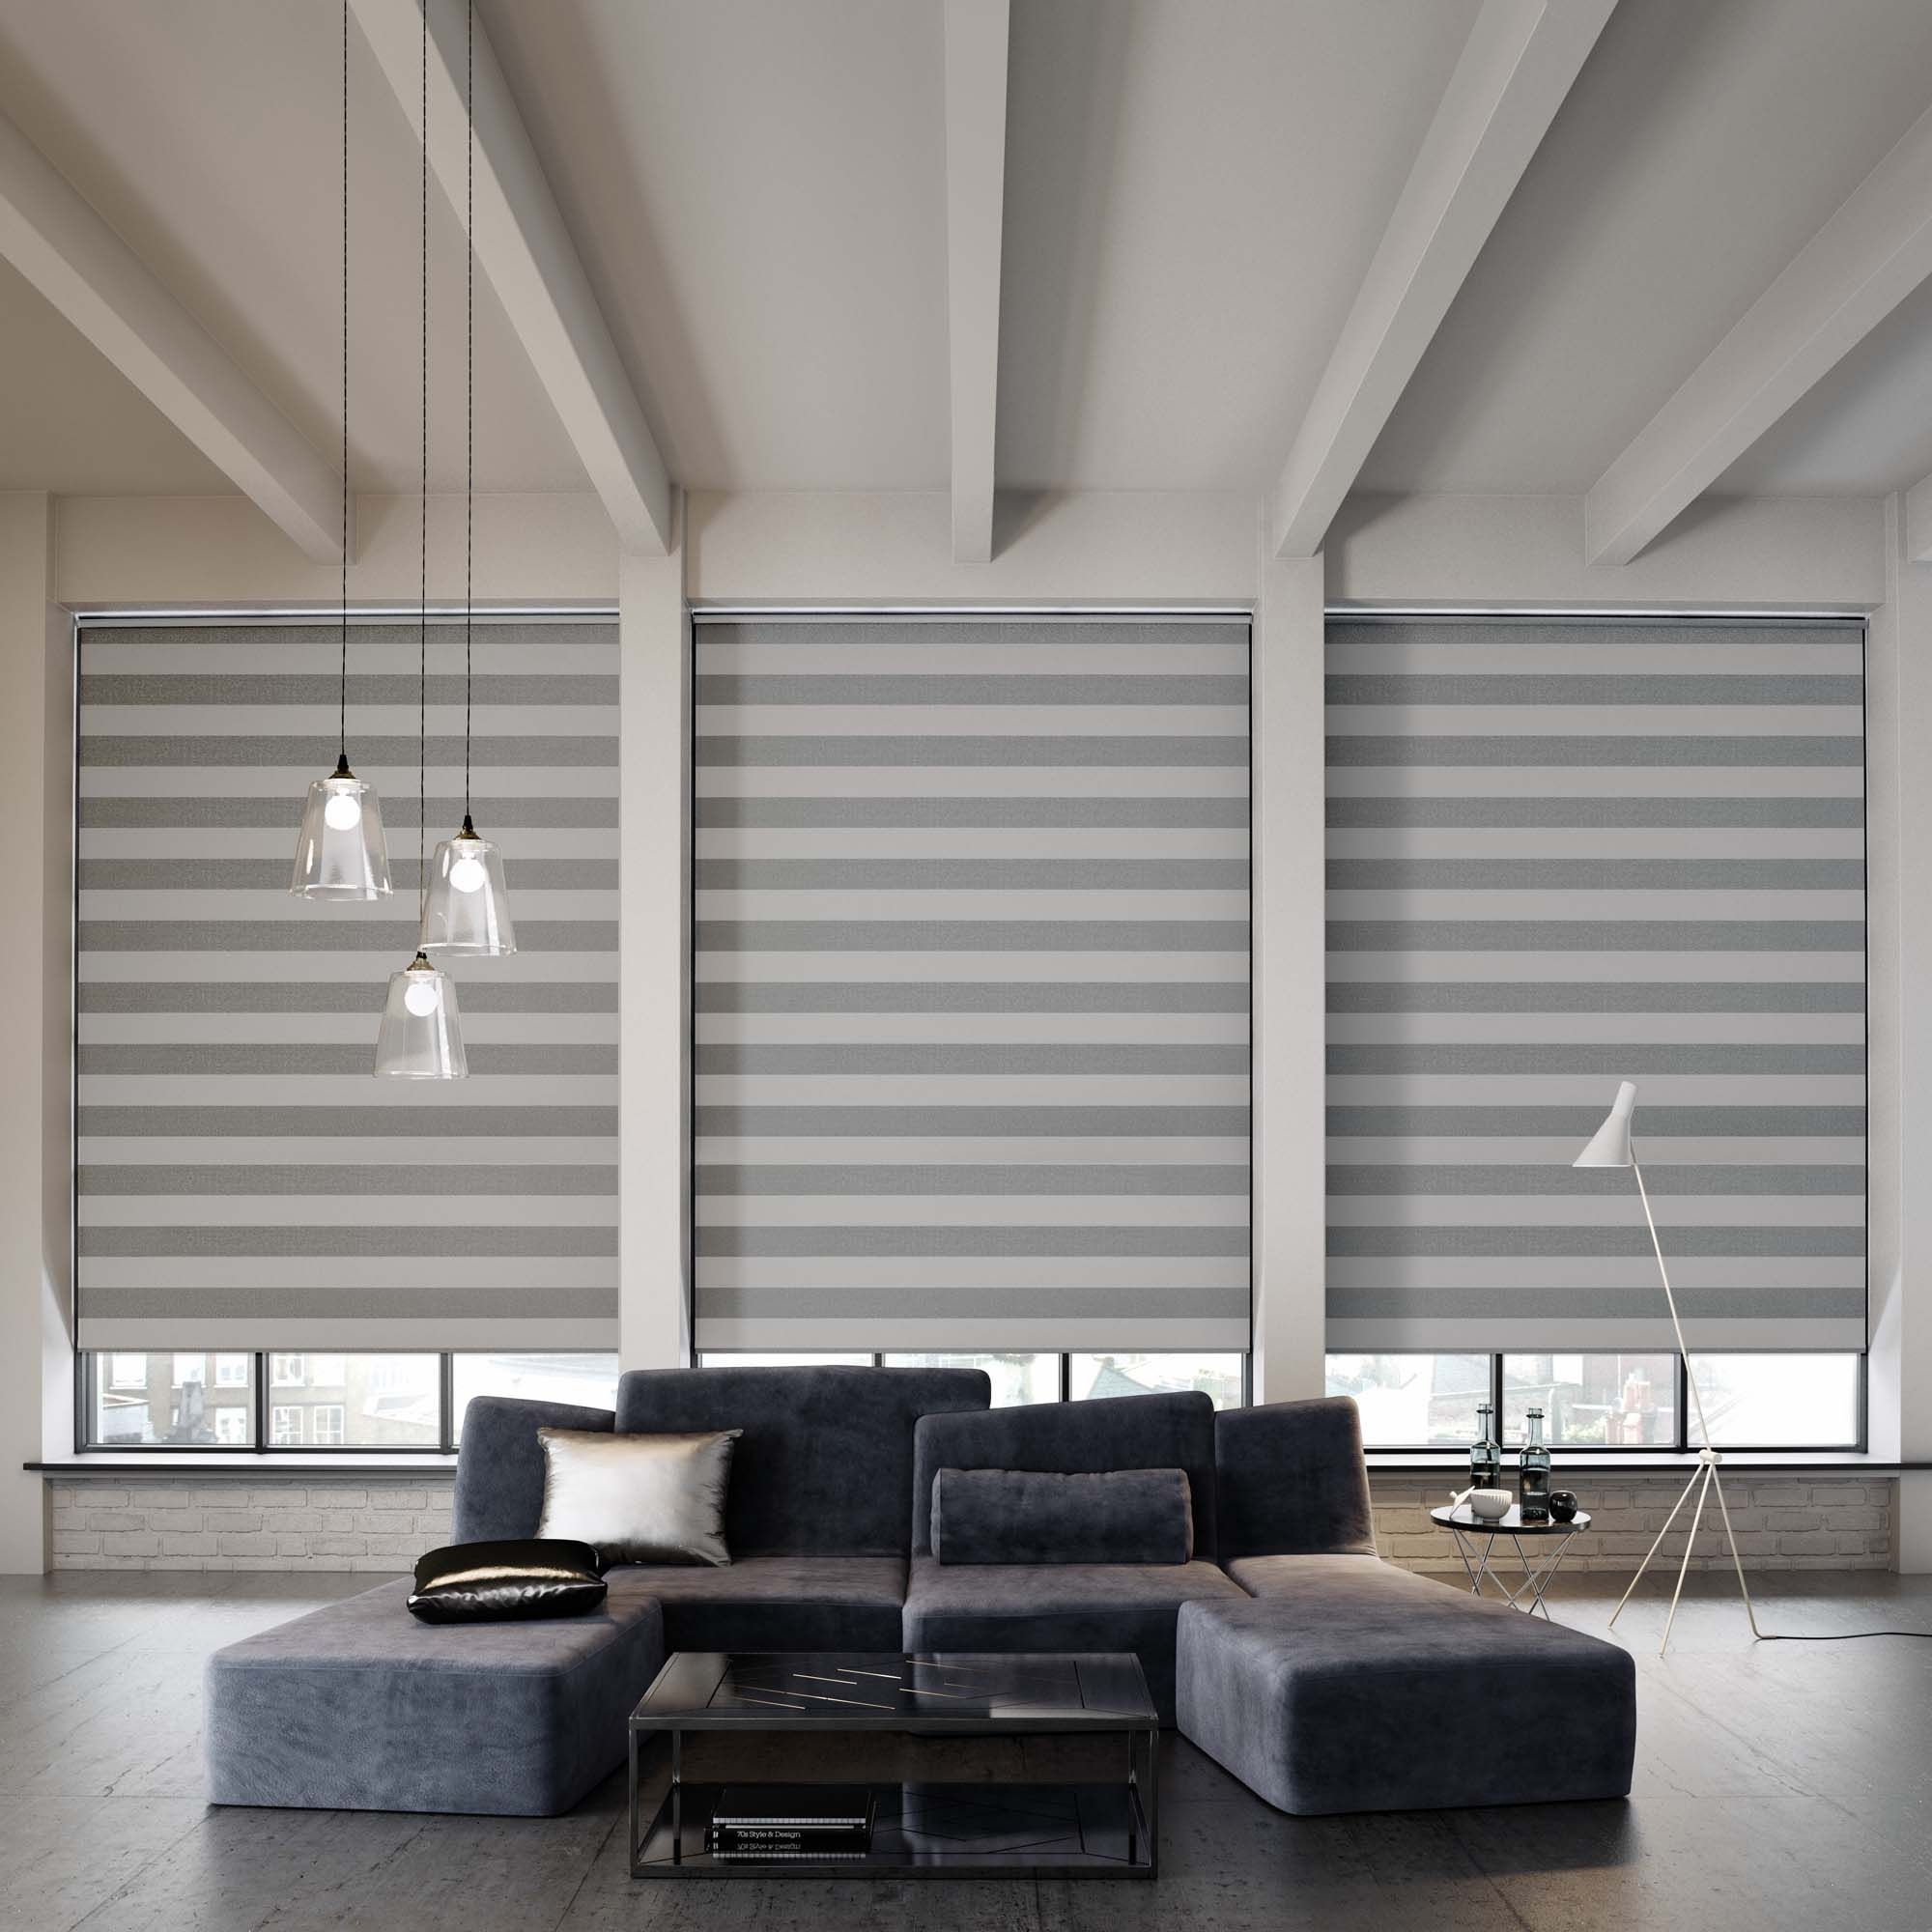 Midas Shadow Roller Blind Curtains With Blinds Roller Blinds